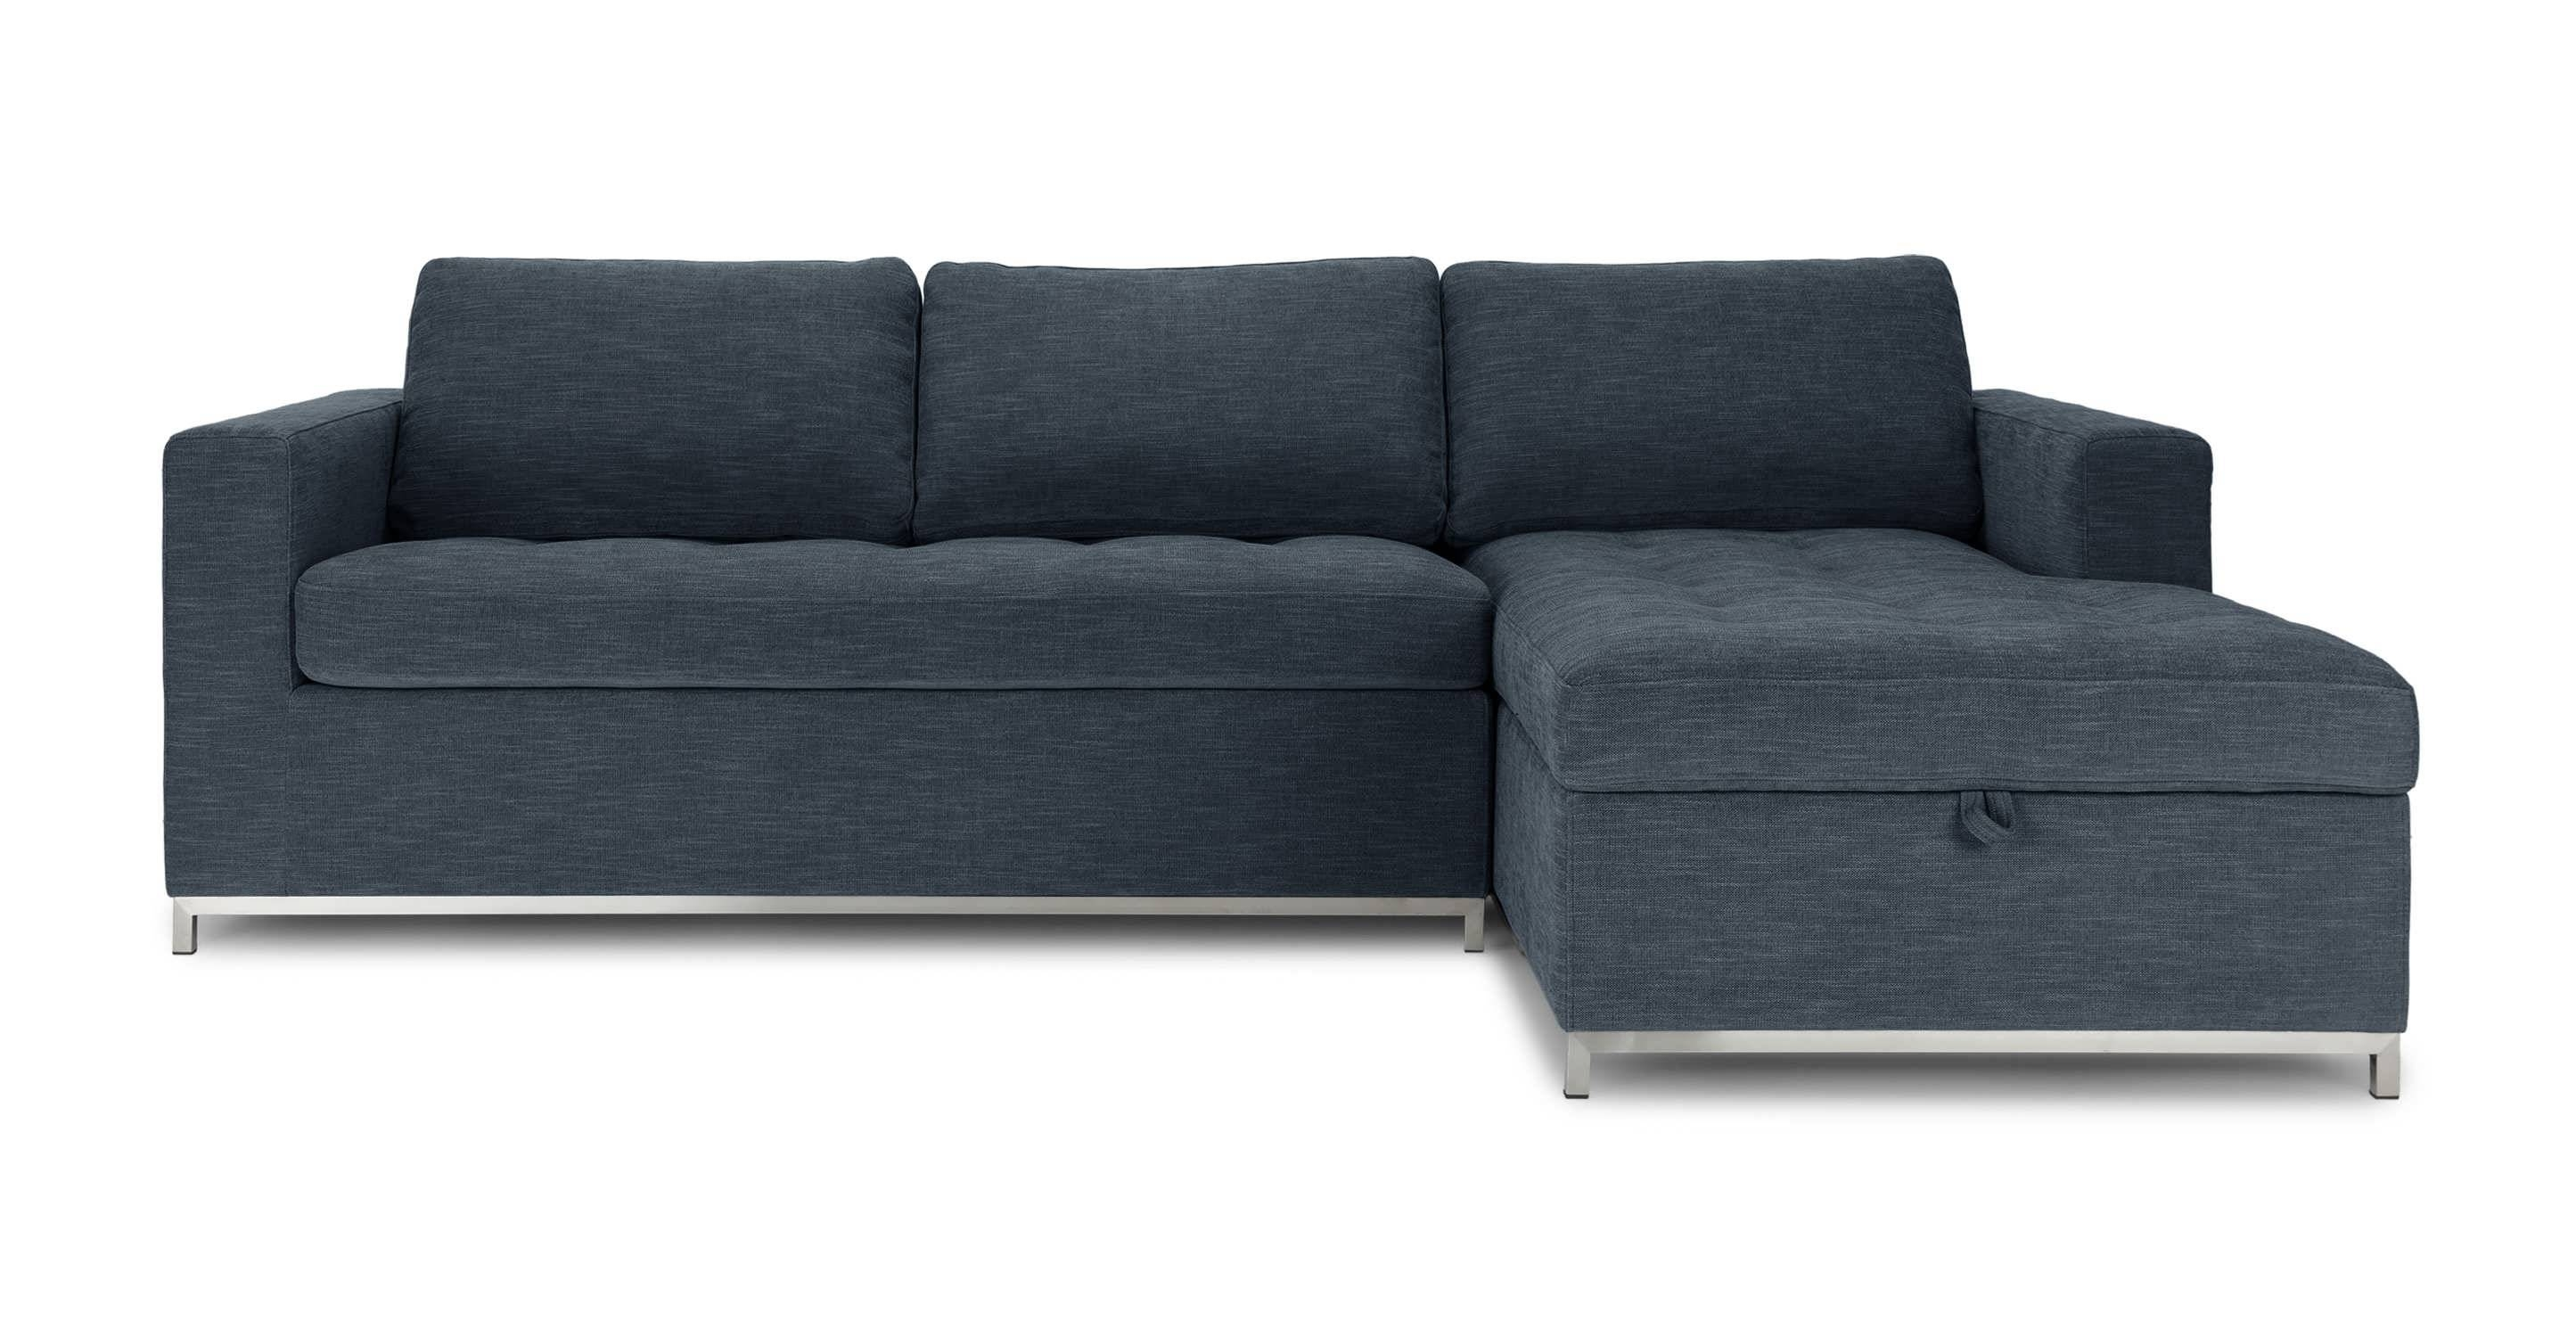 Sofas : Awesome Red Sectional Sofa Corner Sofa Bed L Shaped Sofa with regard to Small L-Shaped Sofas (Image 15 of 15)